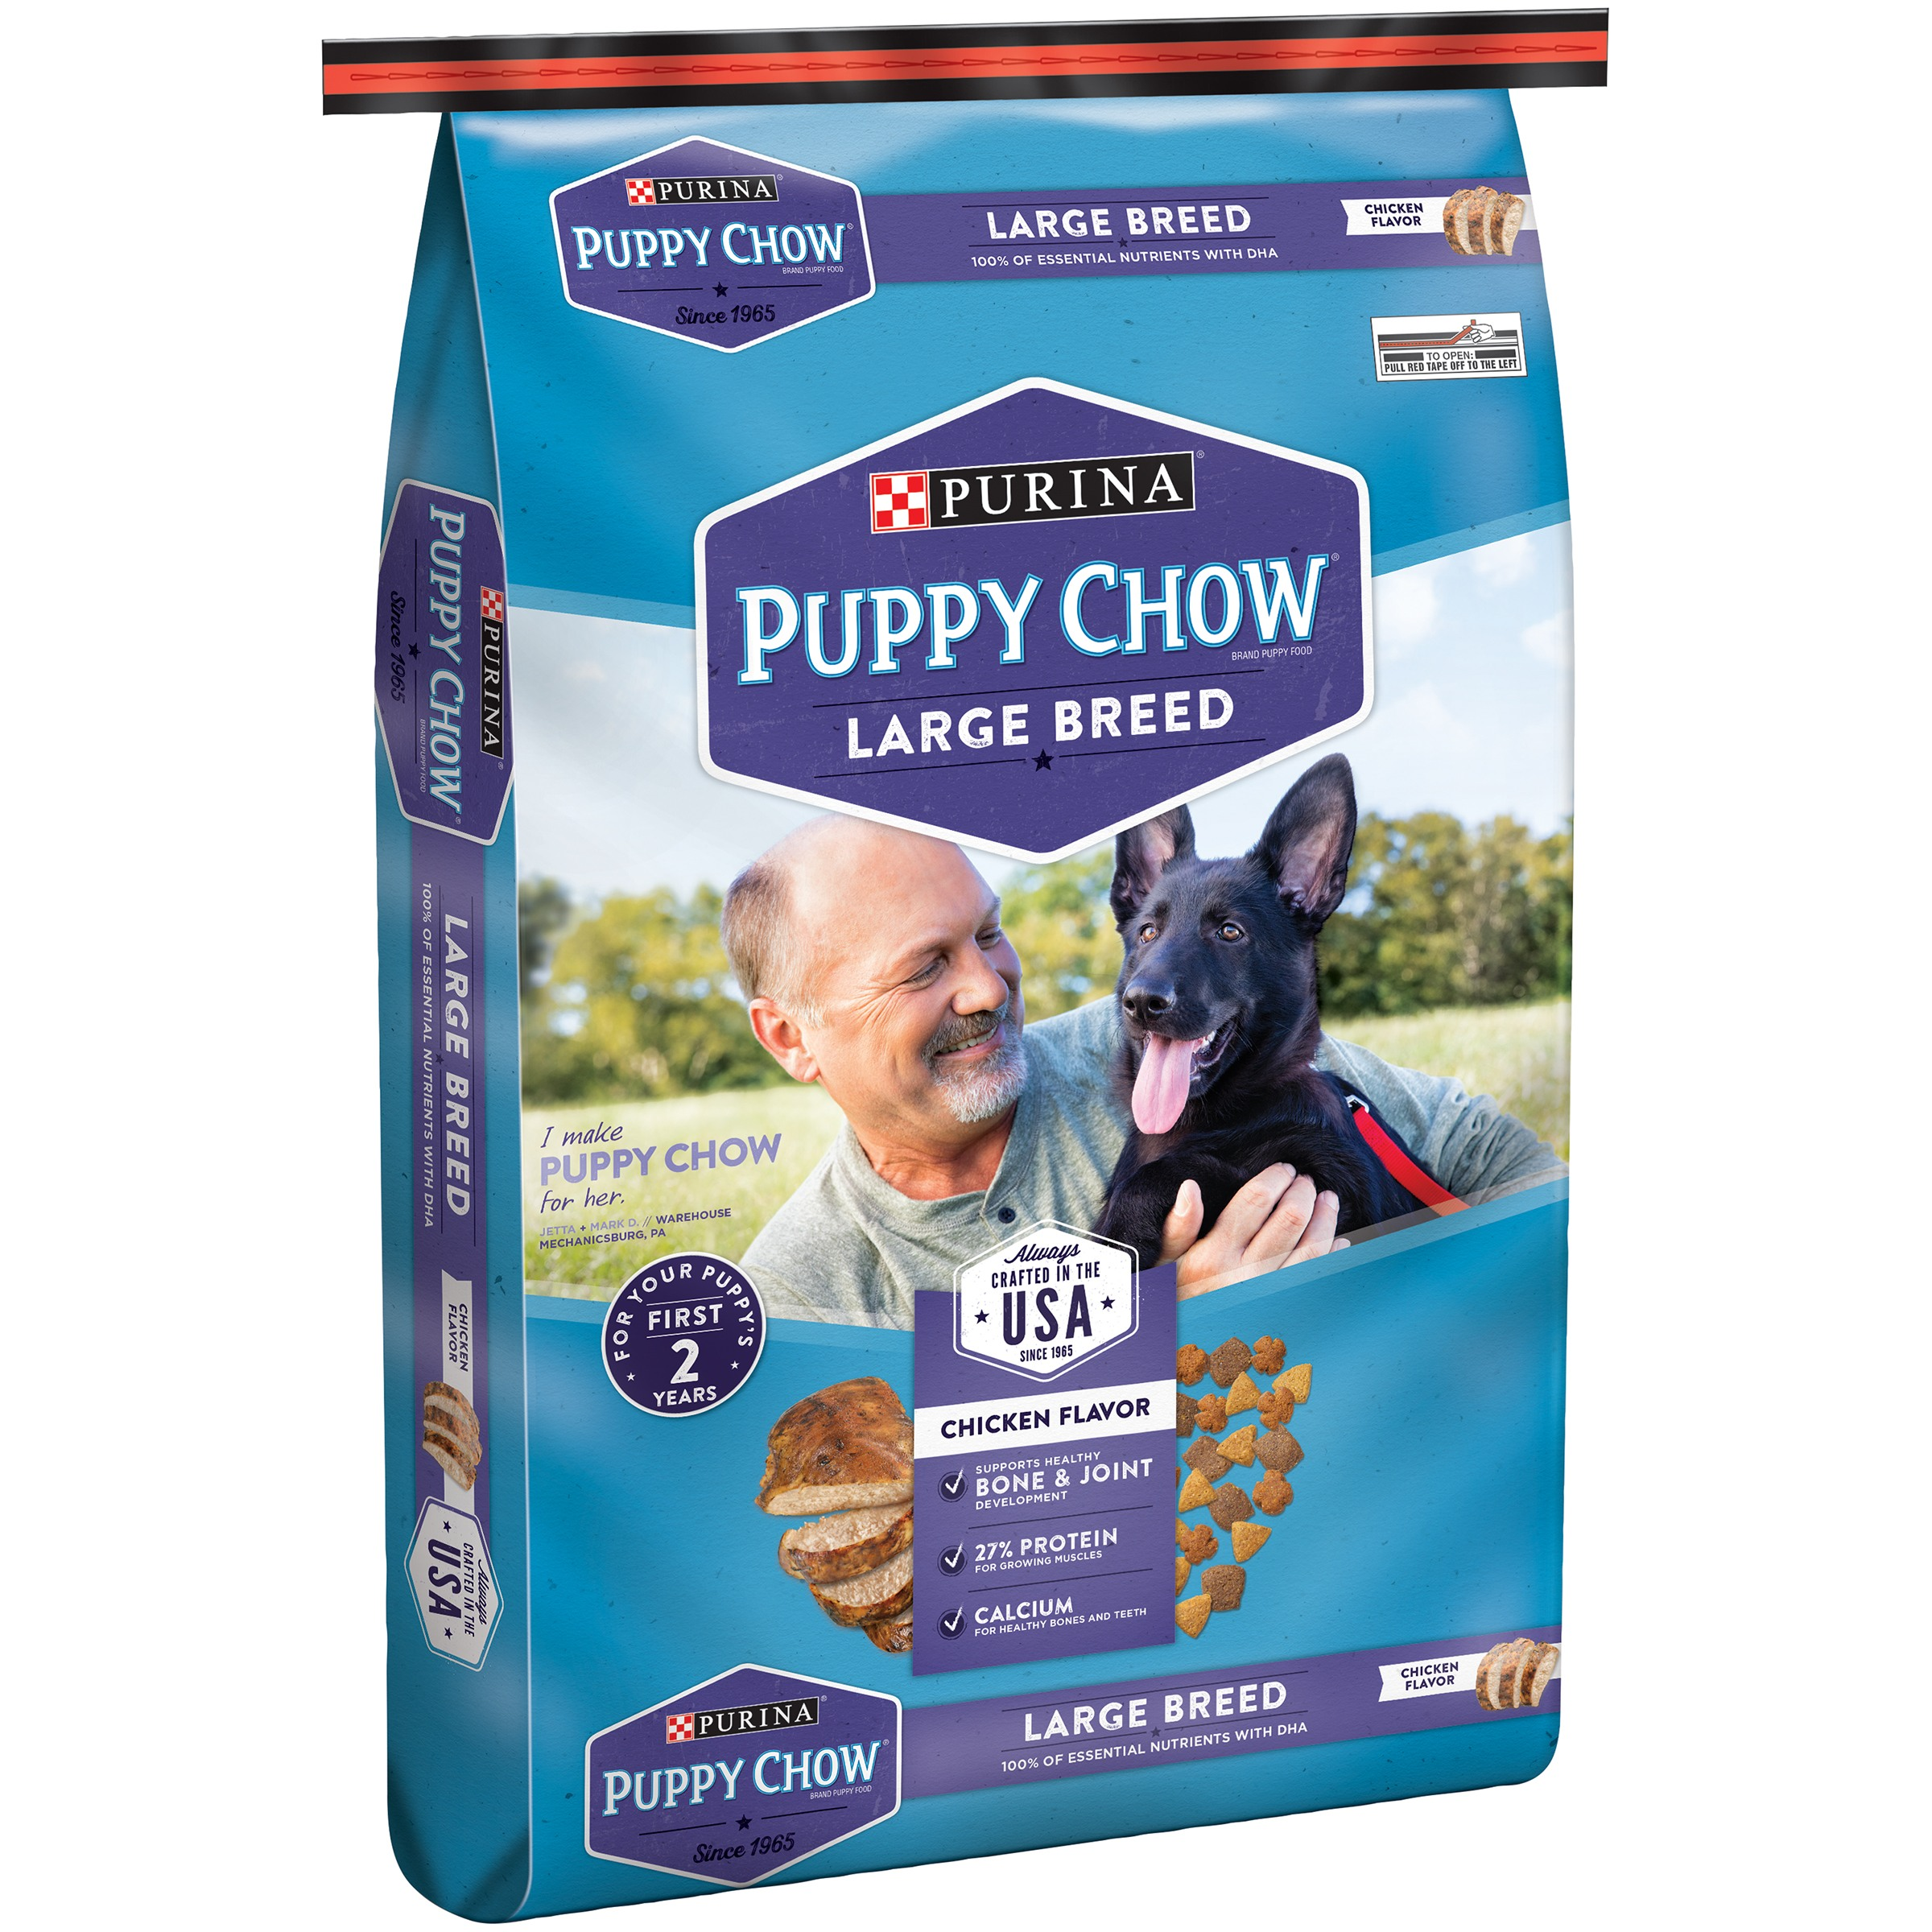 Purina Puppy Chow Large Breed Formula Puppy Food 32 lb. Bag